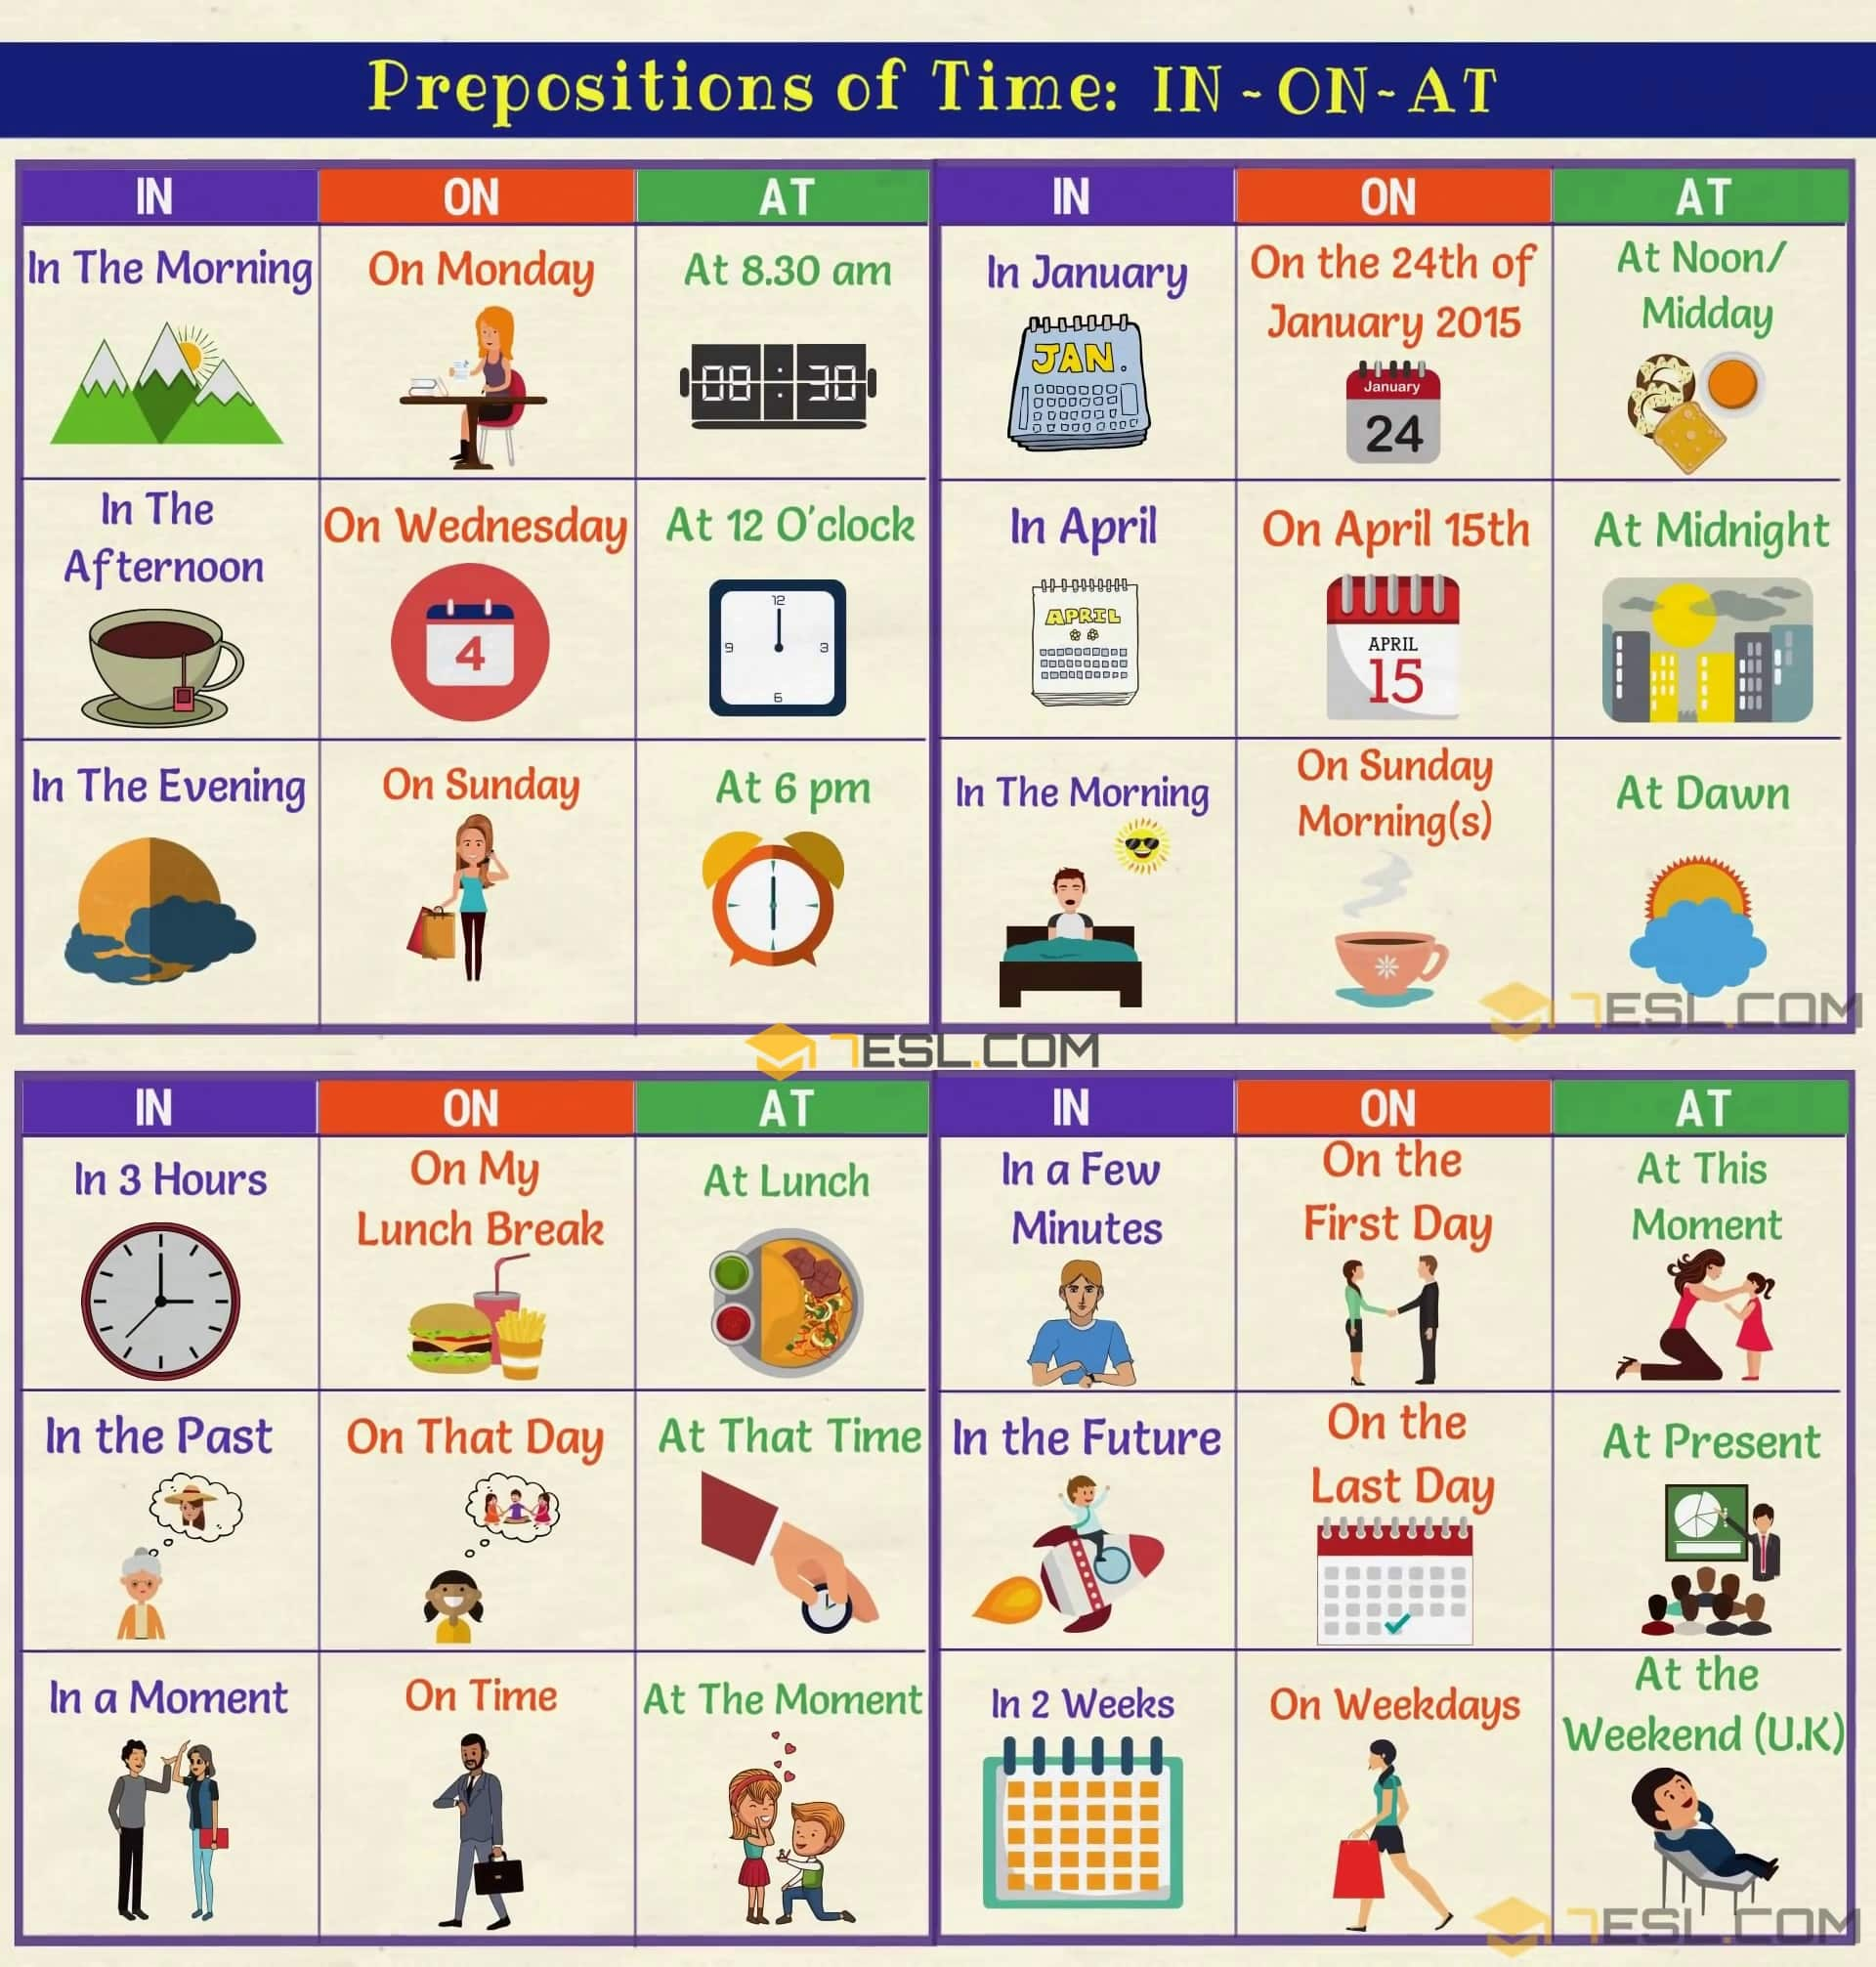 """Time"" Prepositions Examples IN - AT - ON 